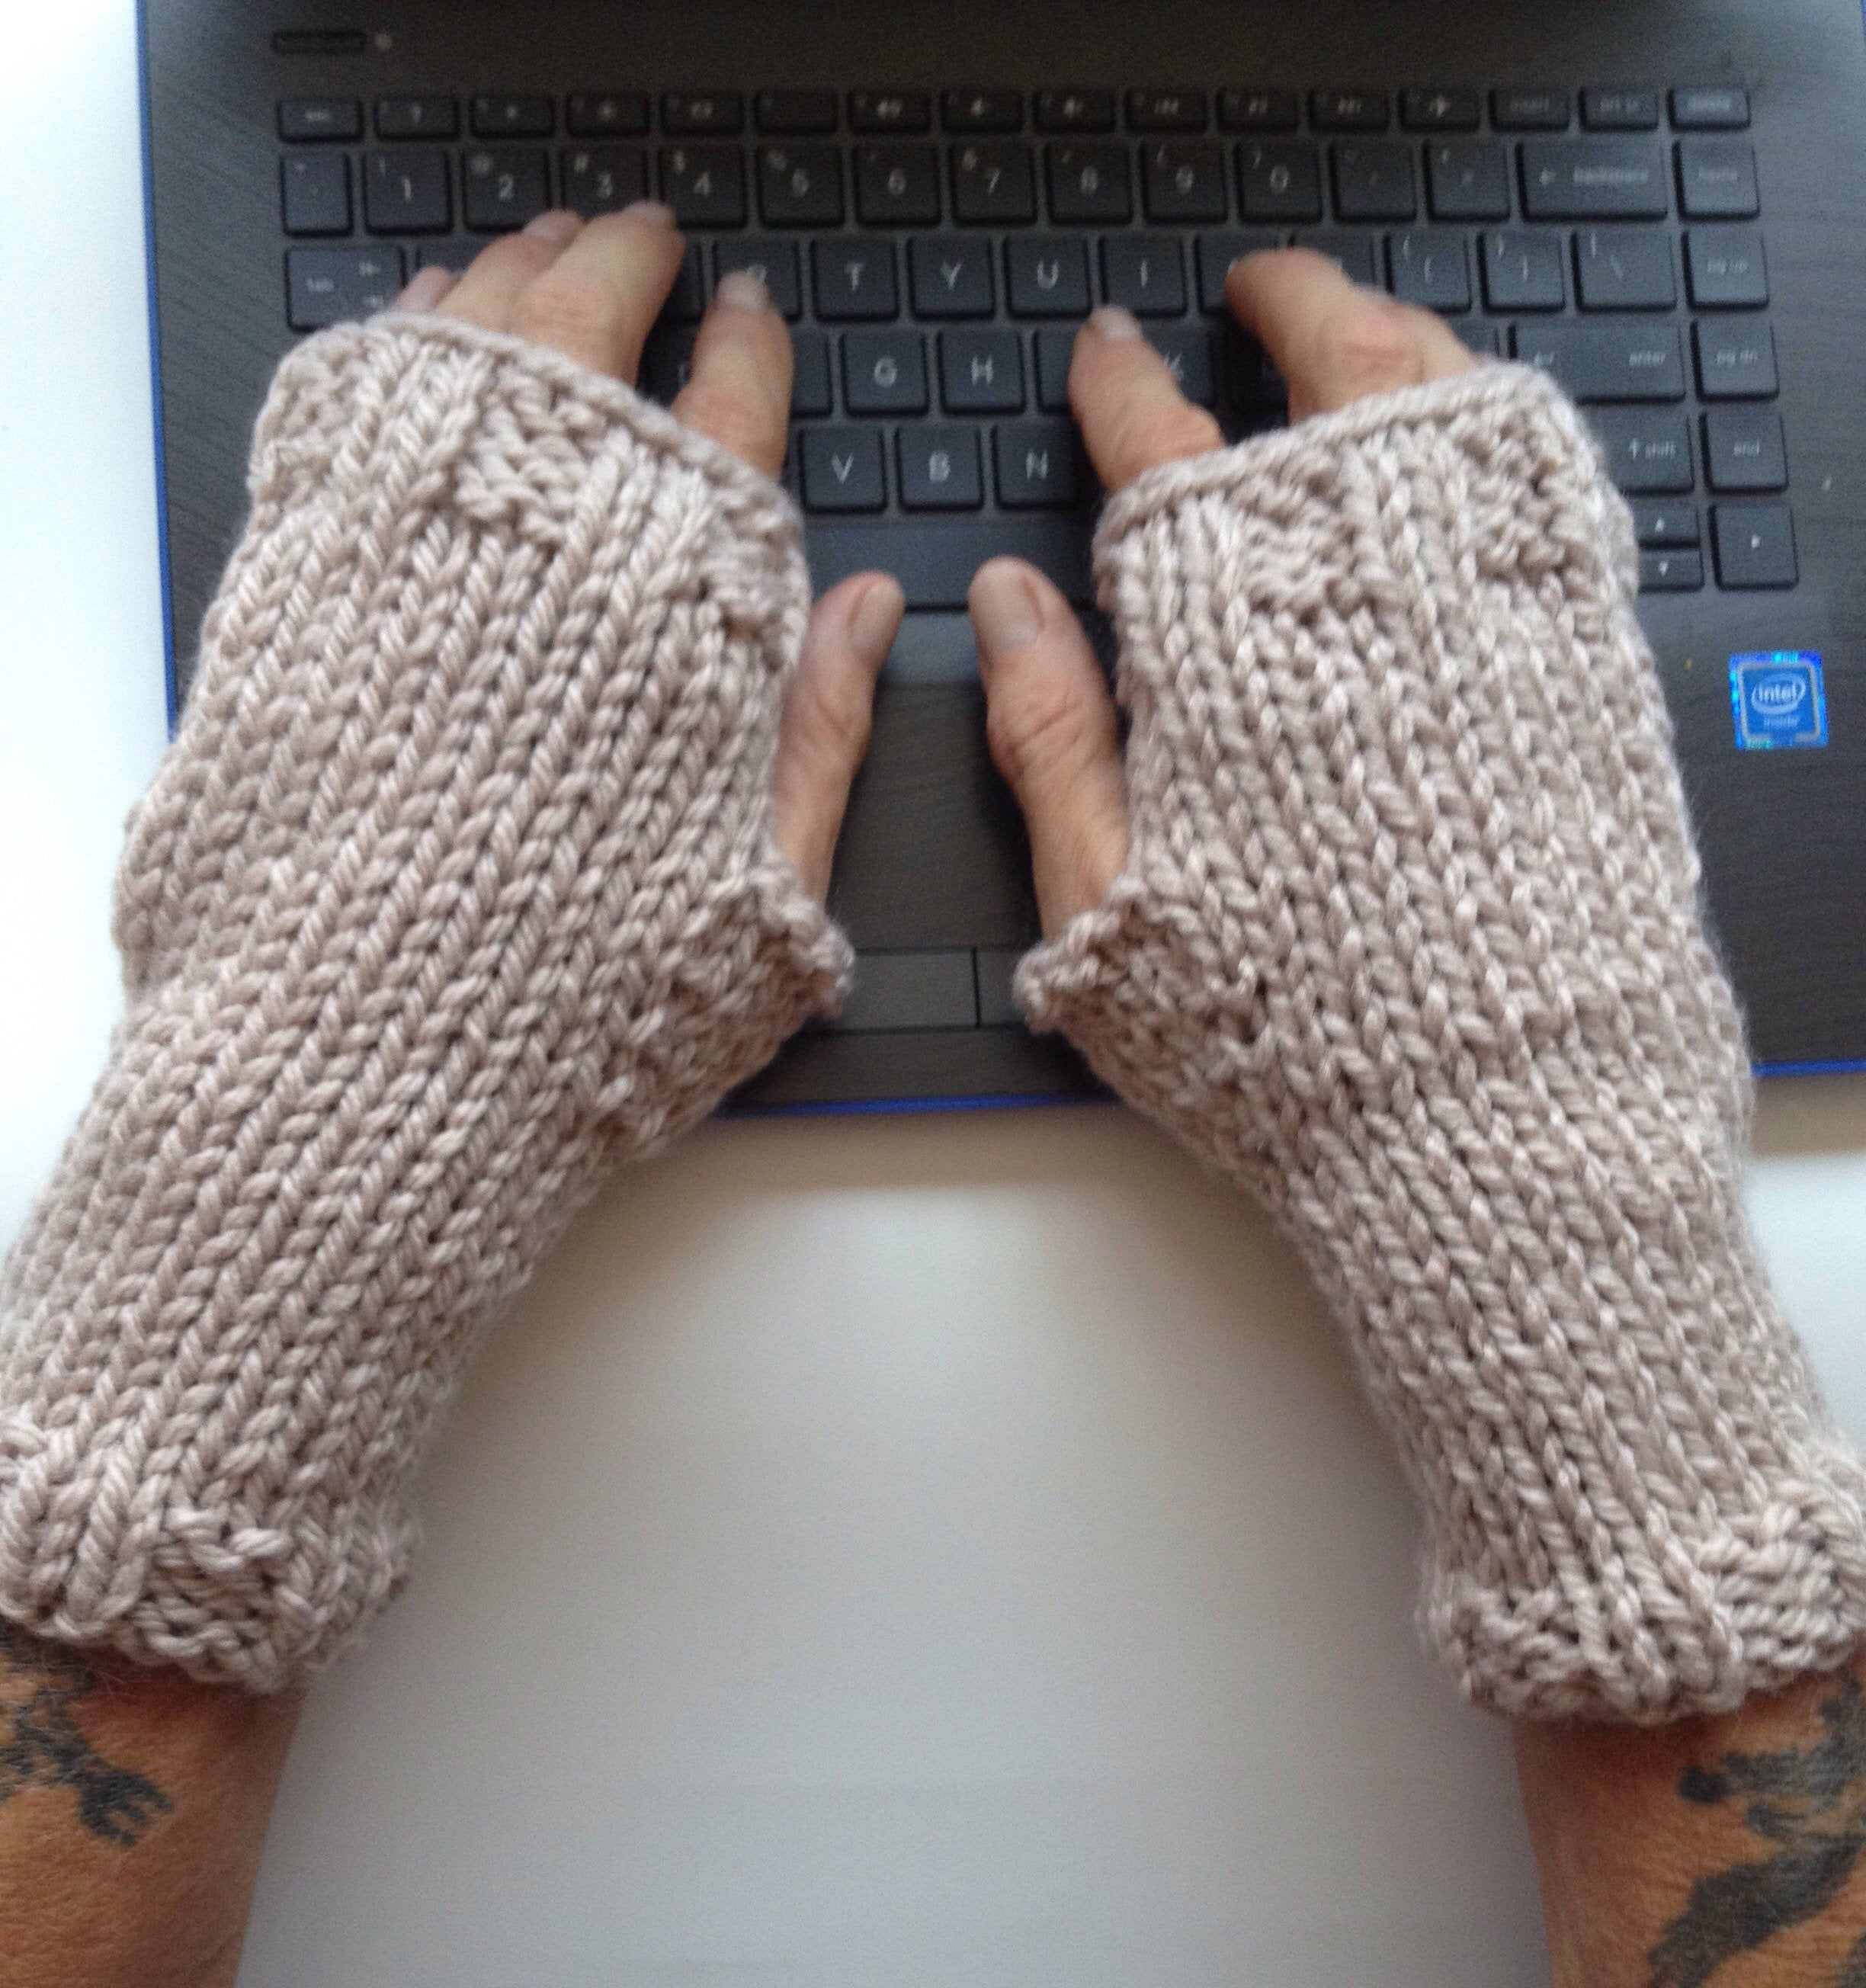 Mens Fingerless Gloves Knitting Pattern Mens Fingerless Mittens Knit Fingerless Gloves Unisex Winter Gloves Available In 3 Sizes Ready To Ship